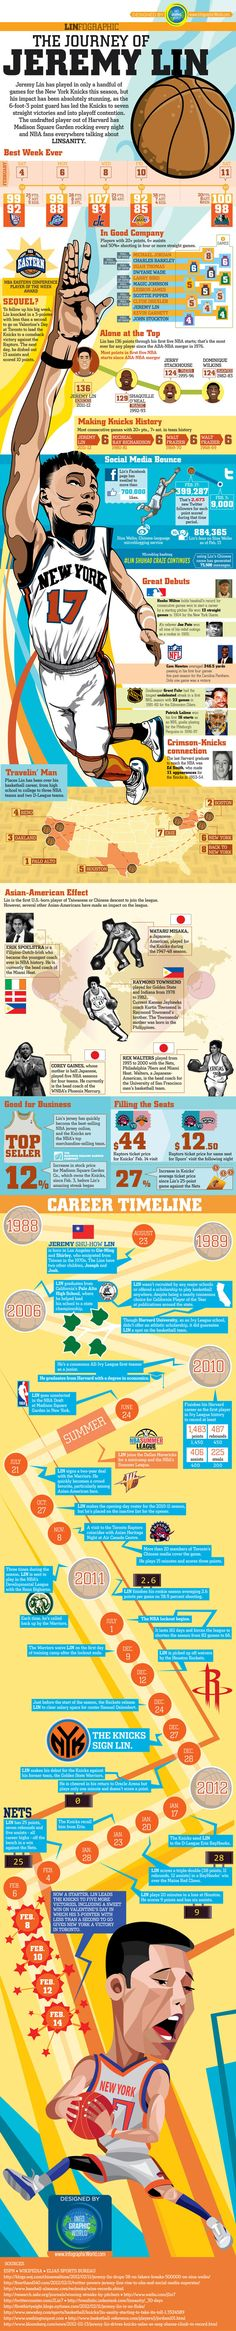 The Linfographic Journey of Jeremy Lin. Love it.